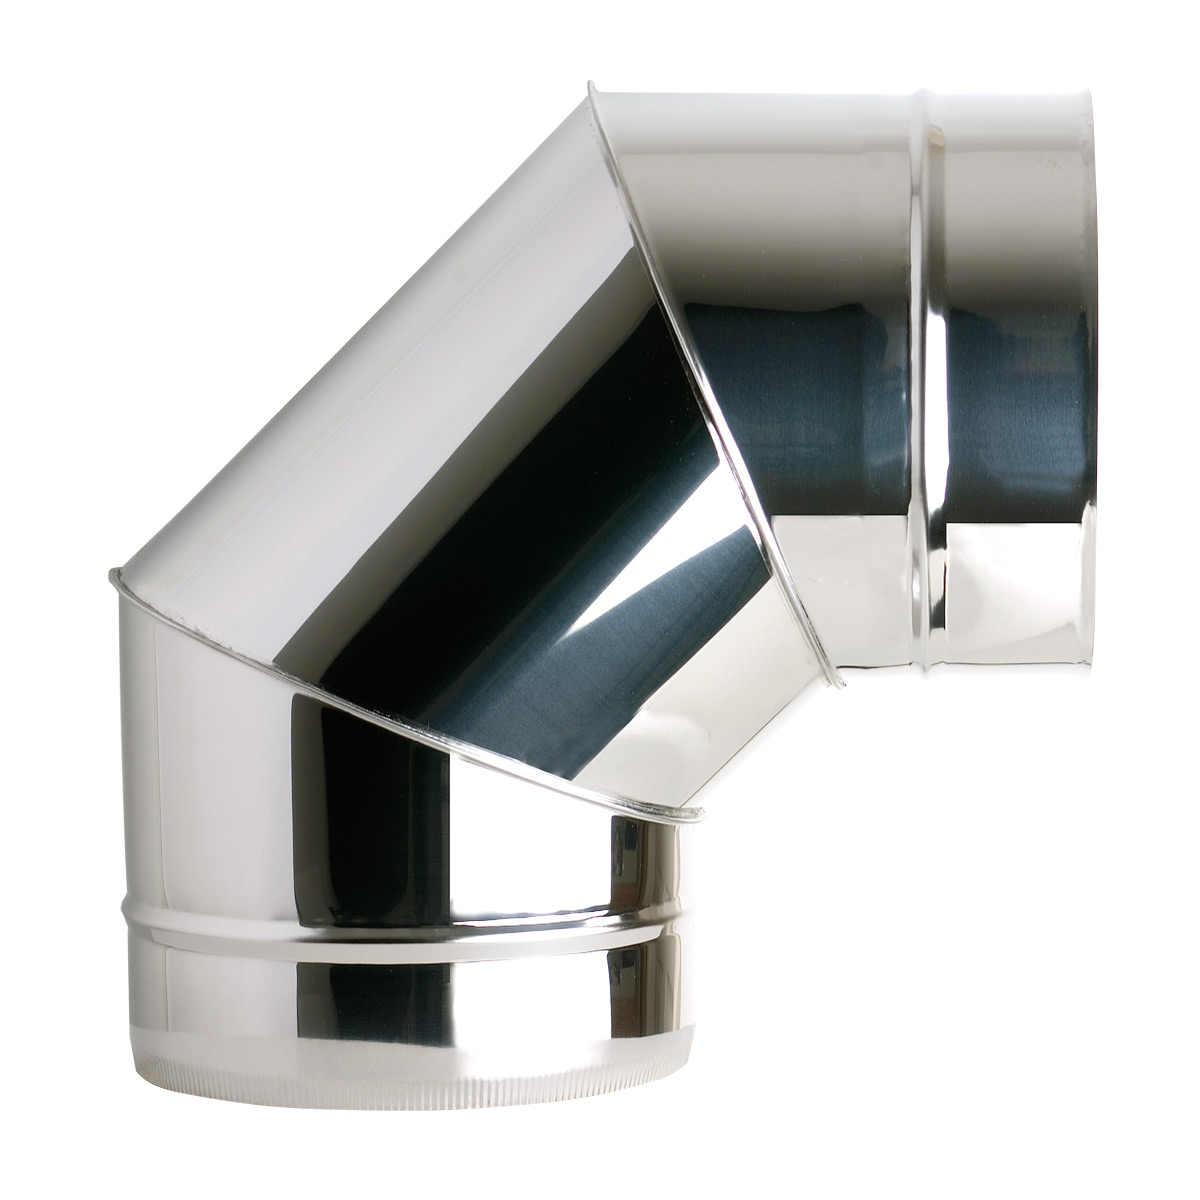 "6"" (150mm) 90° Elbow - Twin Wall Insulated Flue Pipe"